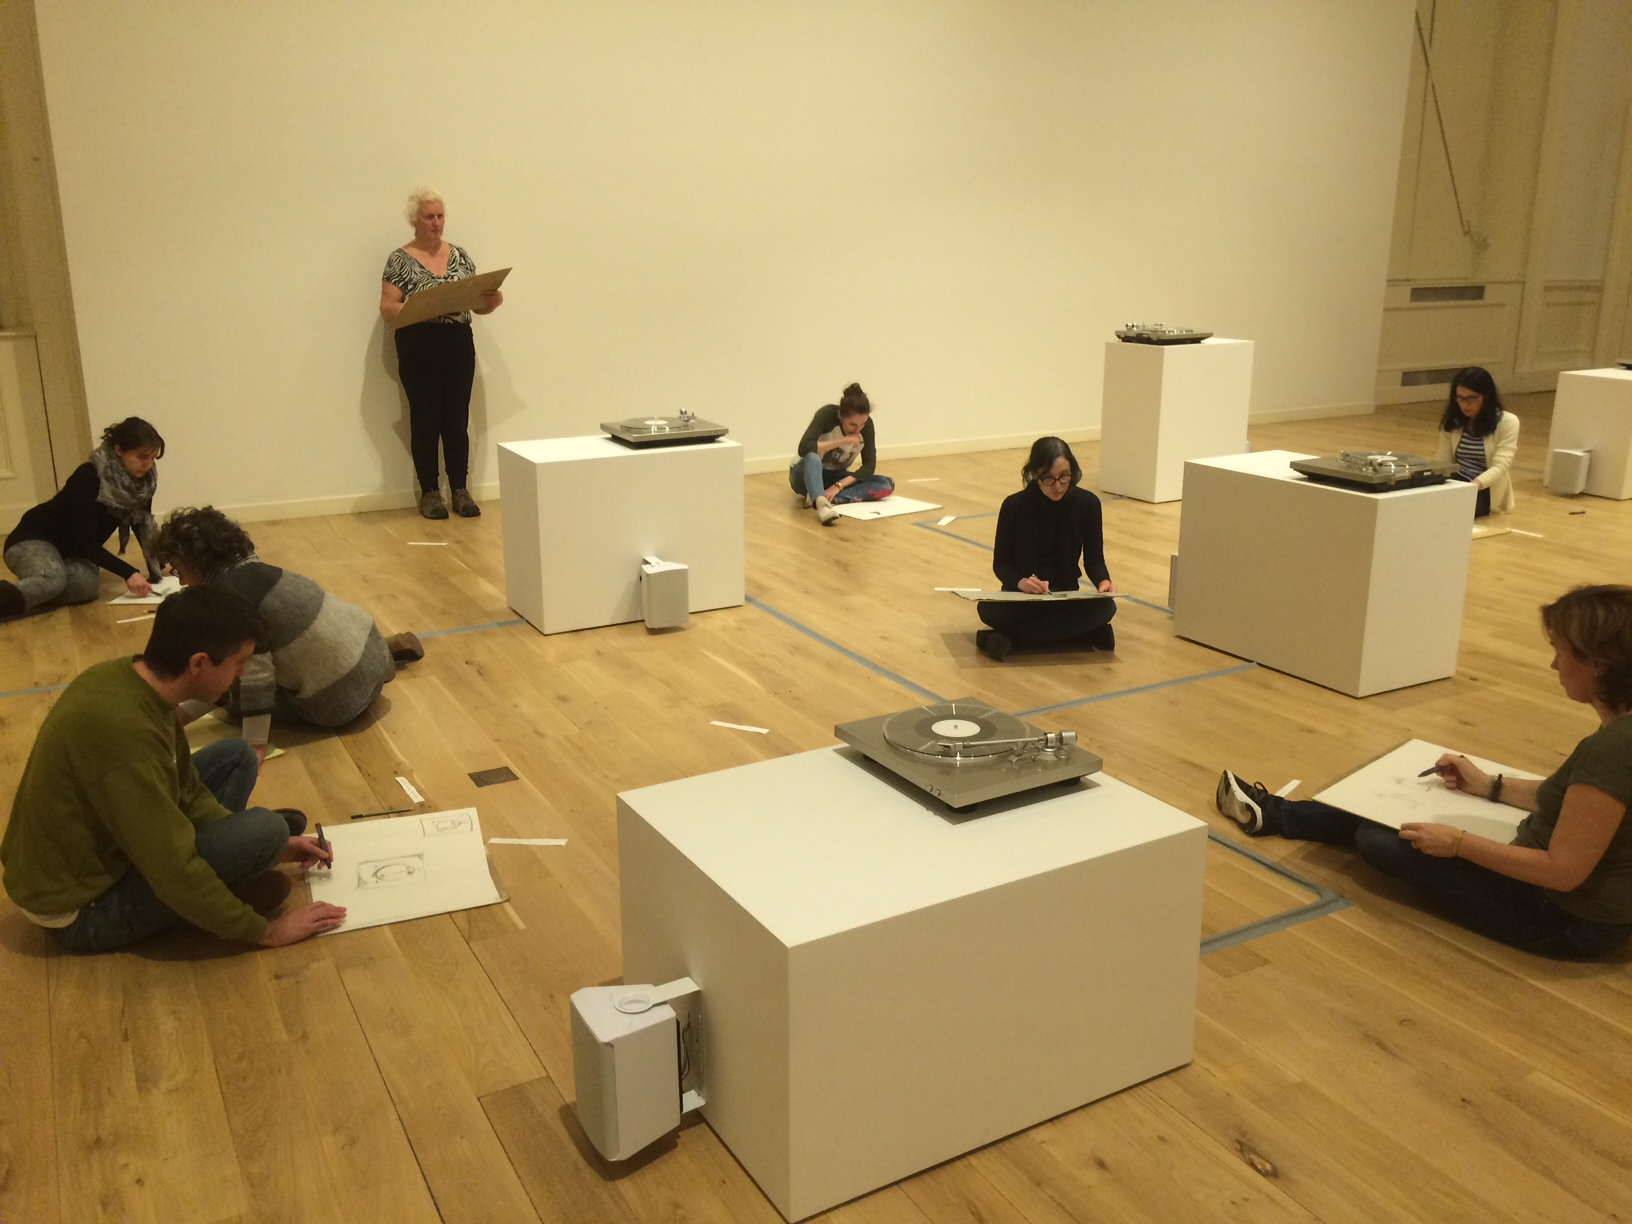 Various people sketching while sitting on the floor in the Gallery of Modern Art surrounded by turntables on plinths